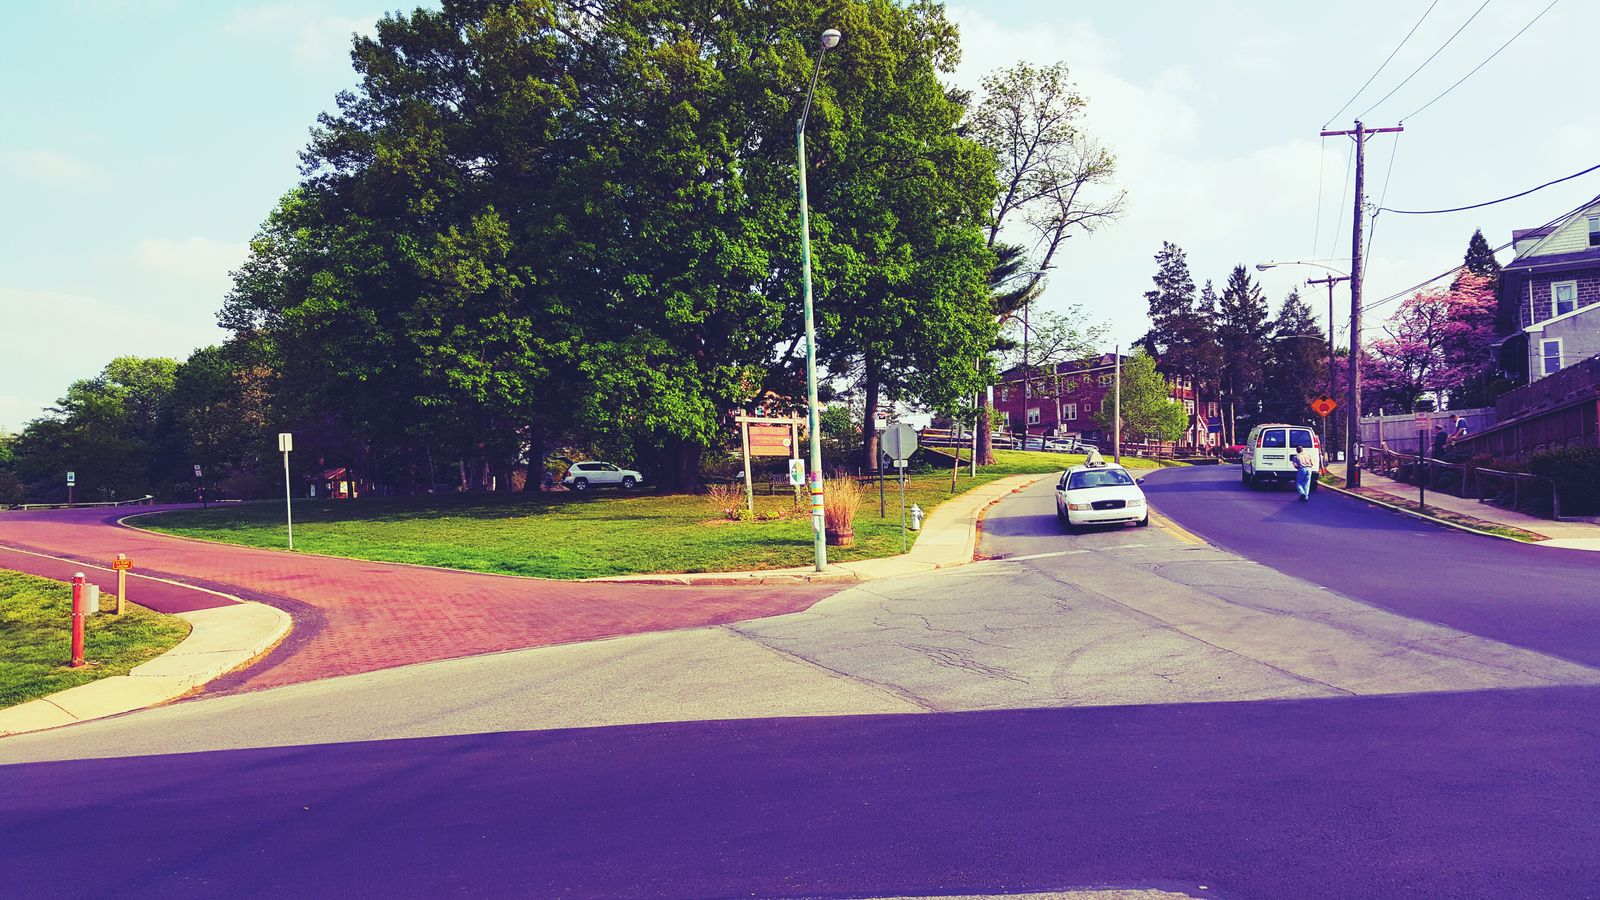 Neighborhood My Neighborhood Elkins Park Walking Around Walk Vibing In My City Colors Blown Out Galaxys6